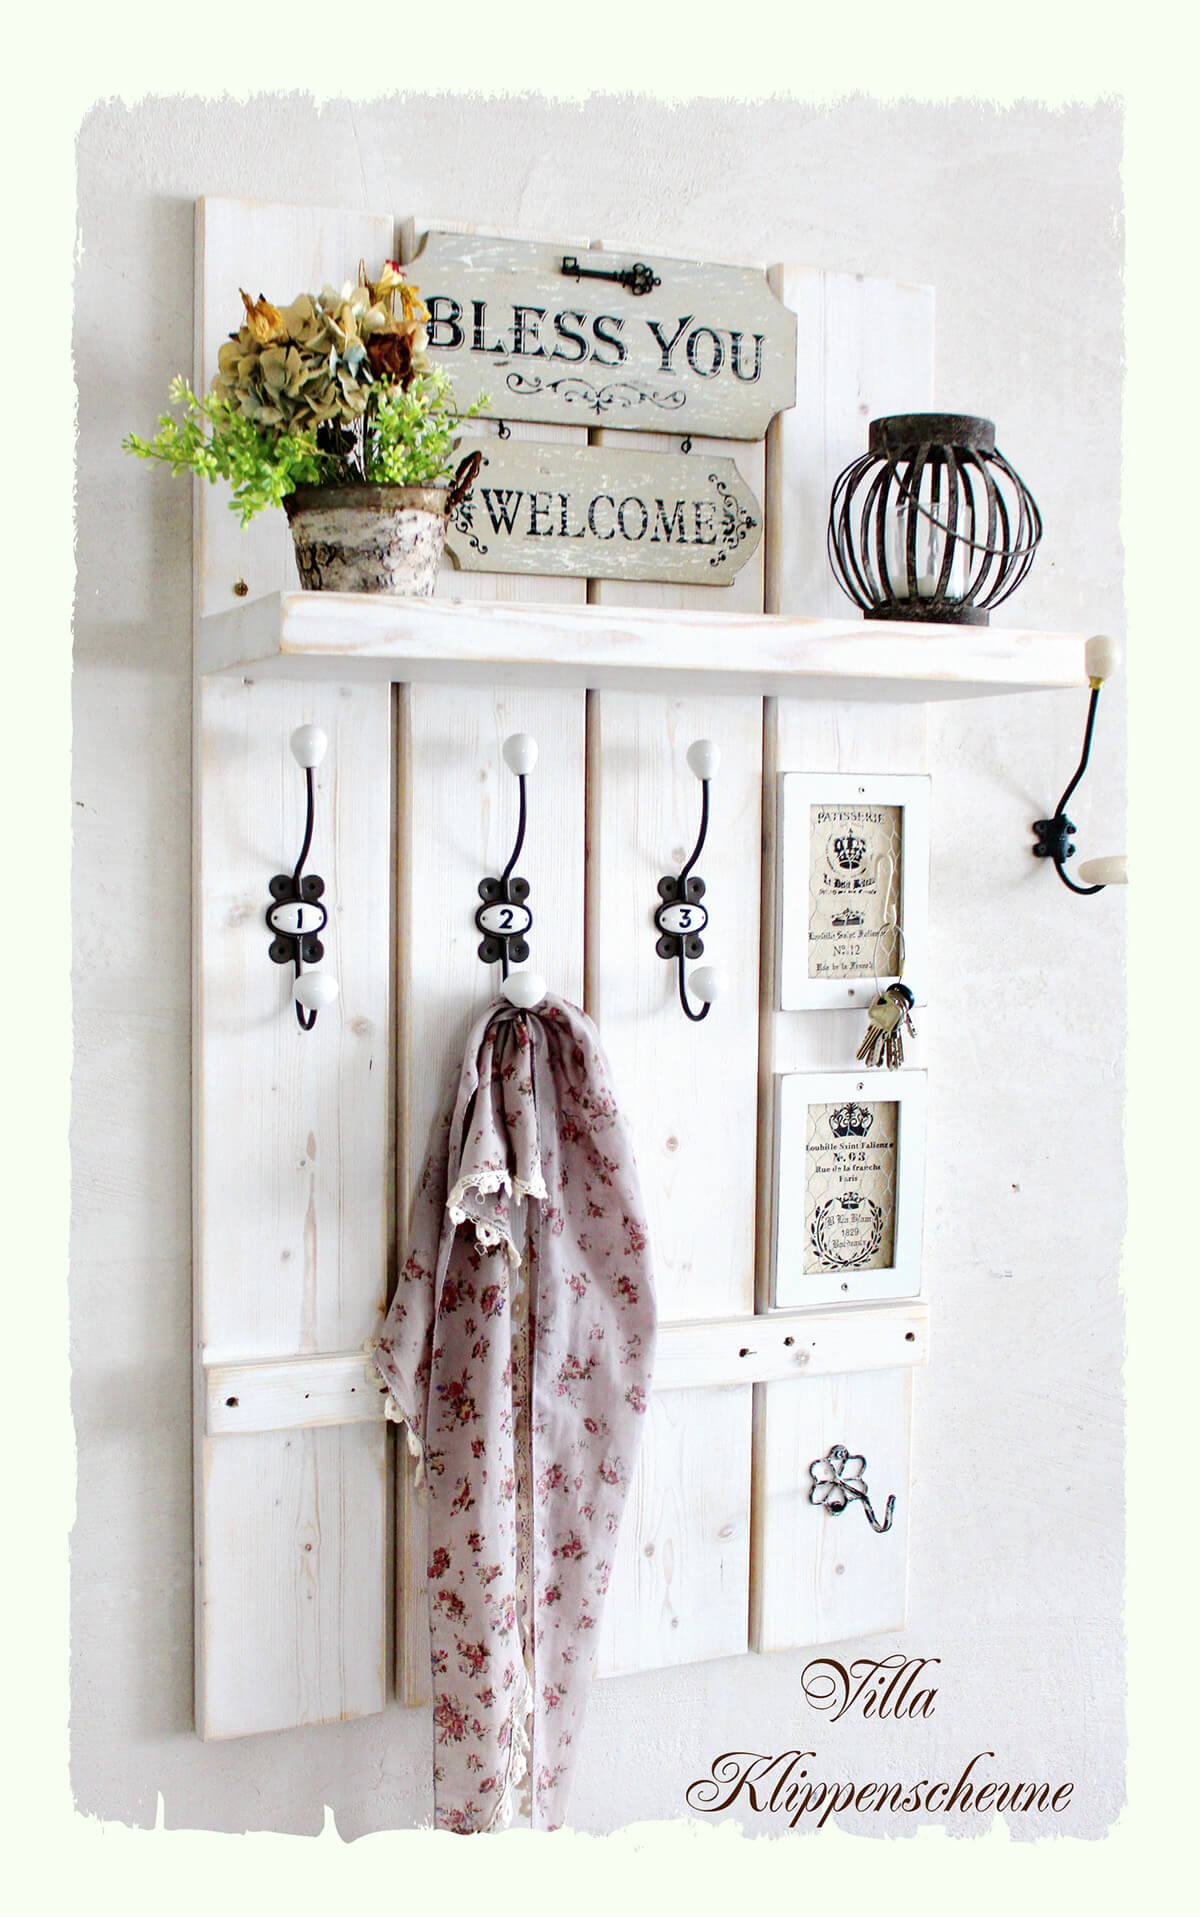 Warm Welcome Barn Door Décor